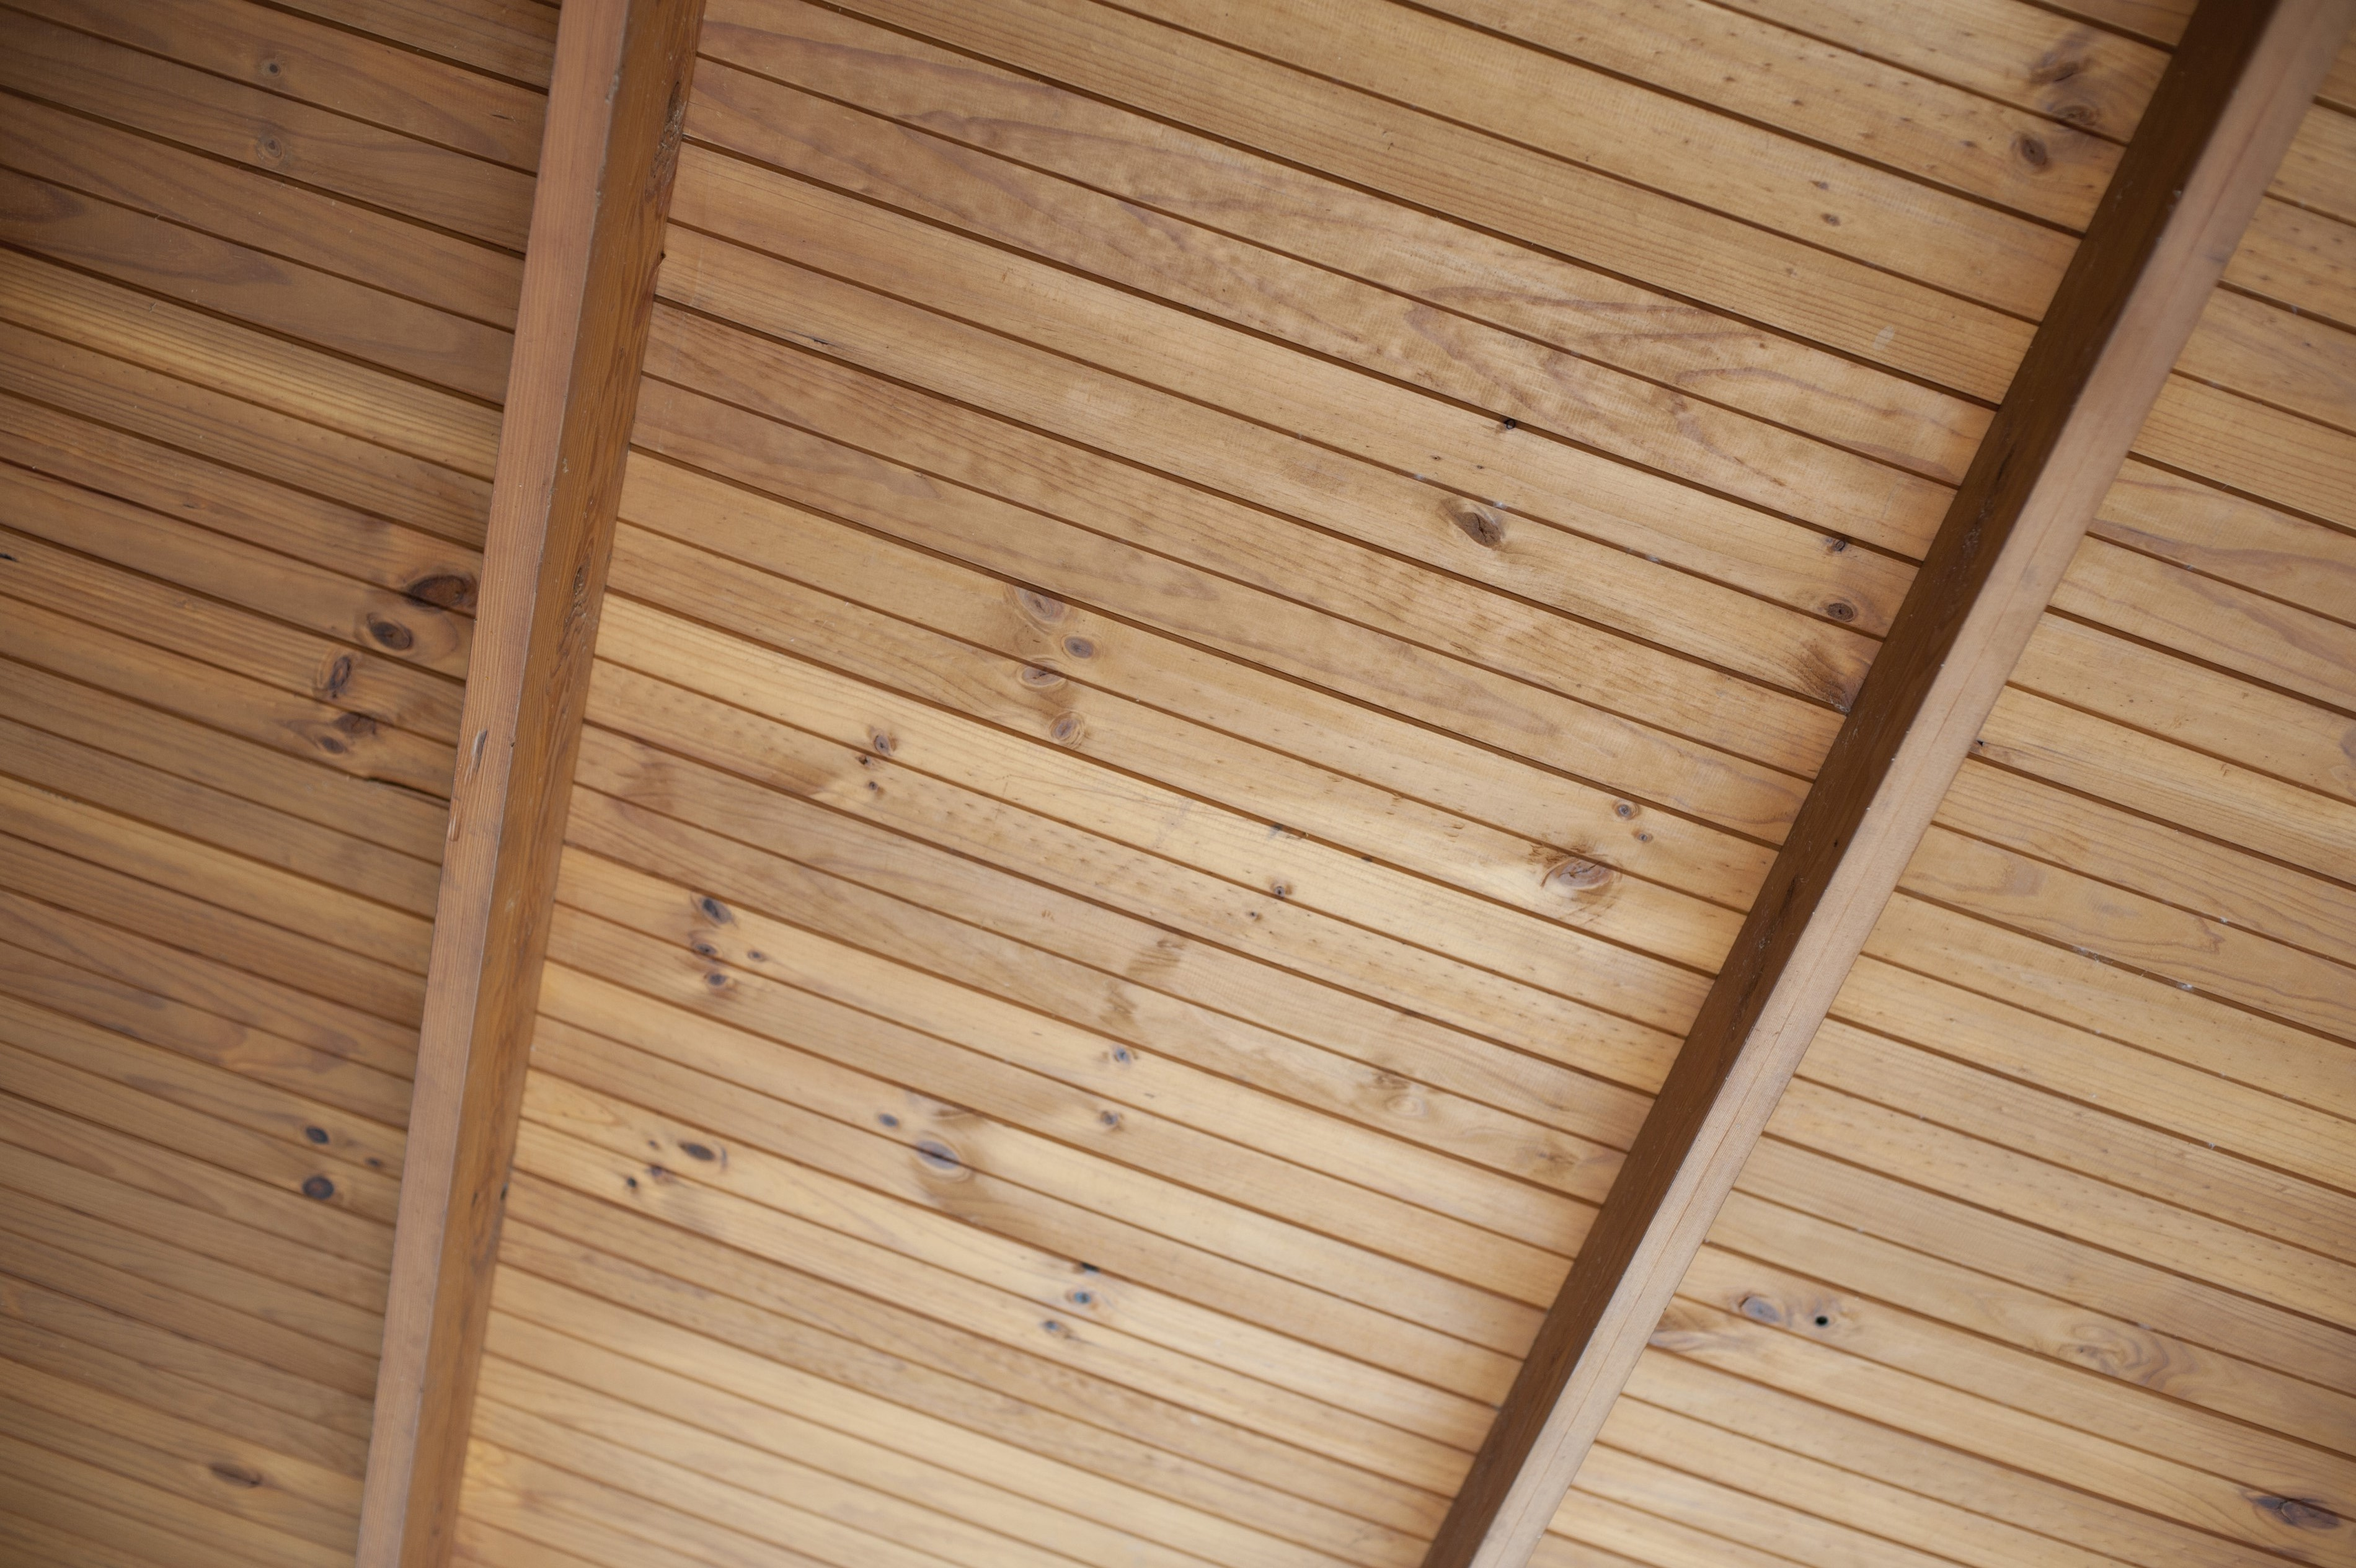 Wooden Ceiling Free Backgrounds And Textures Cr103 Com